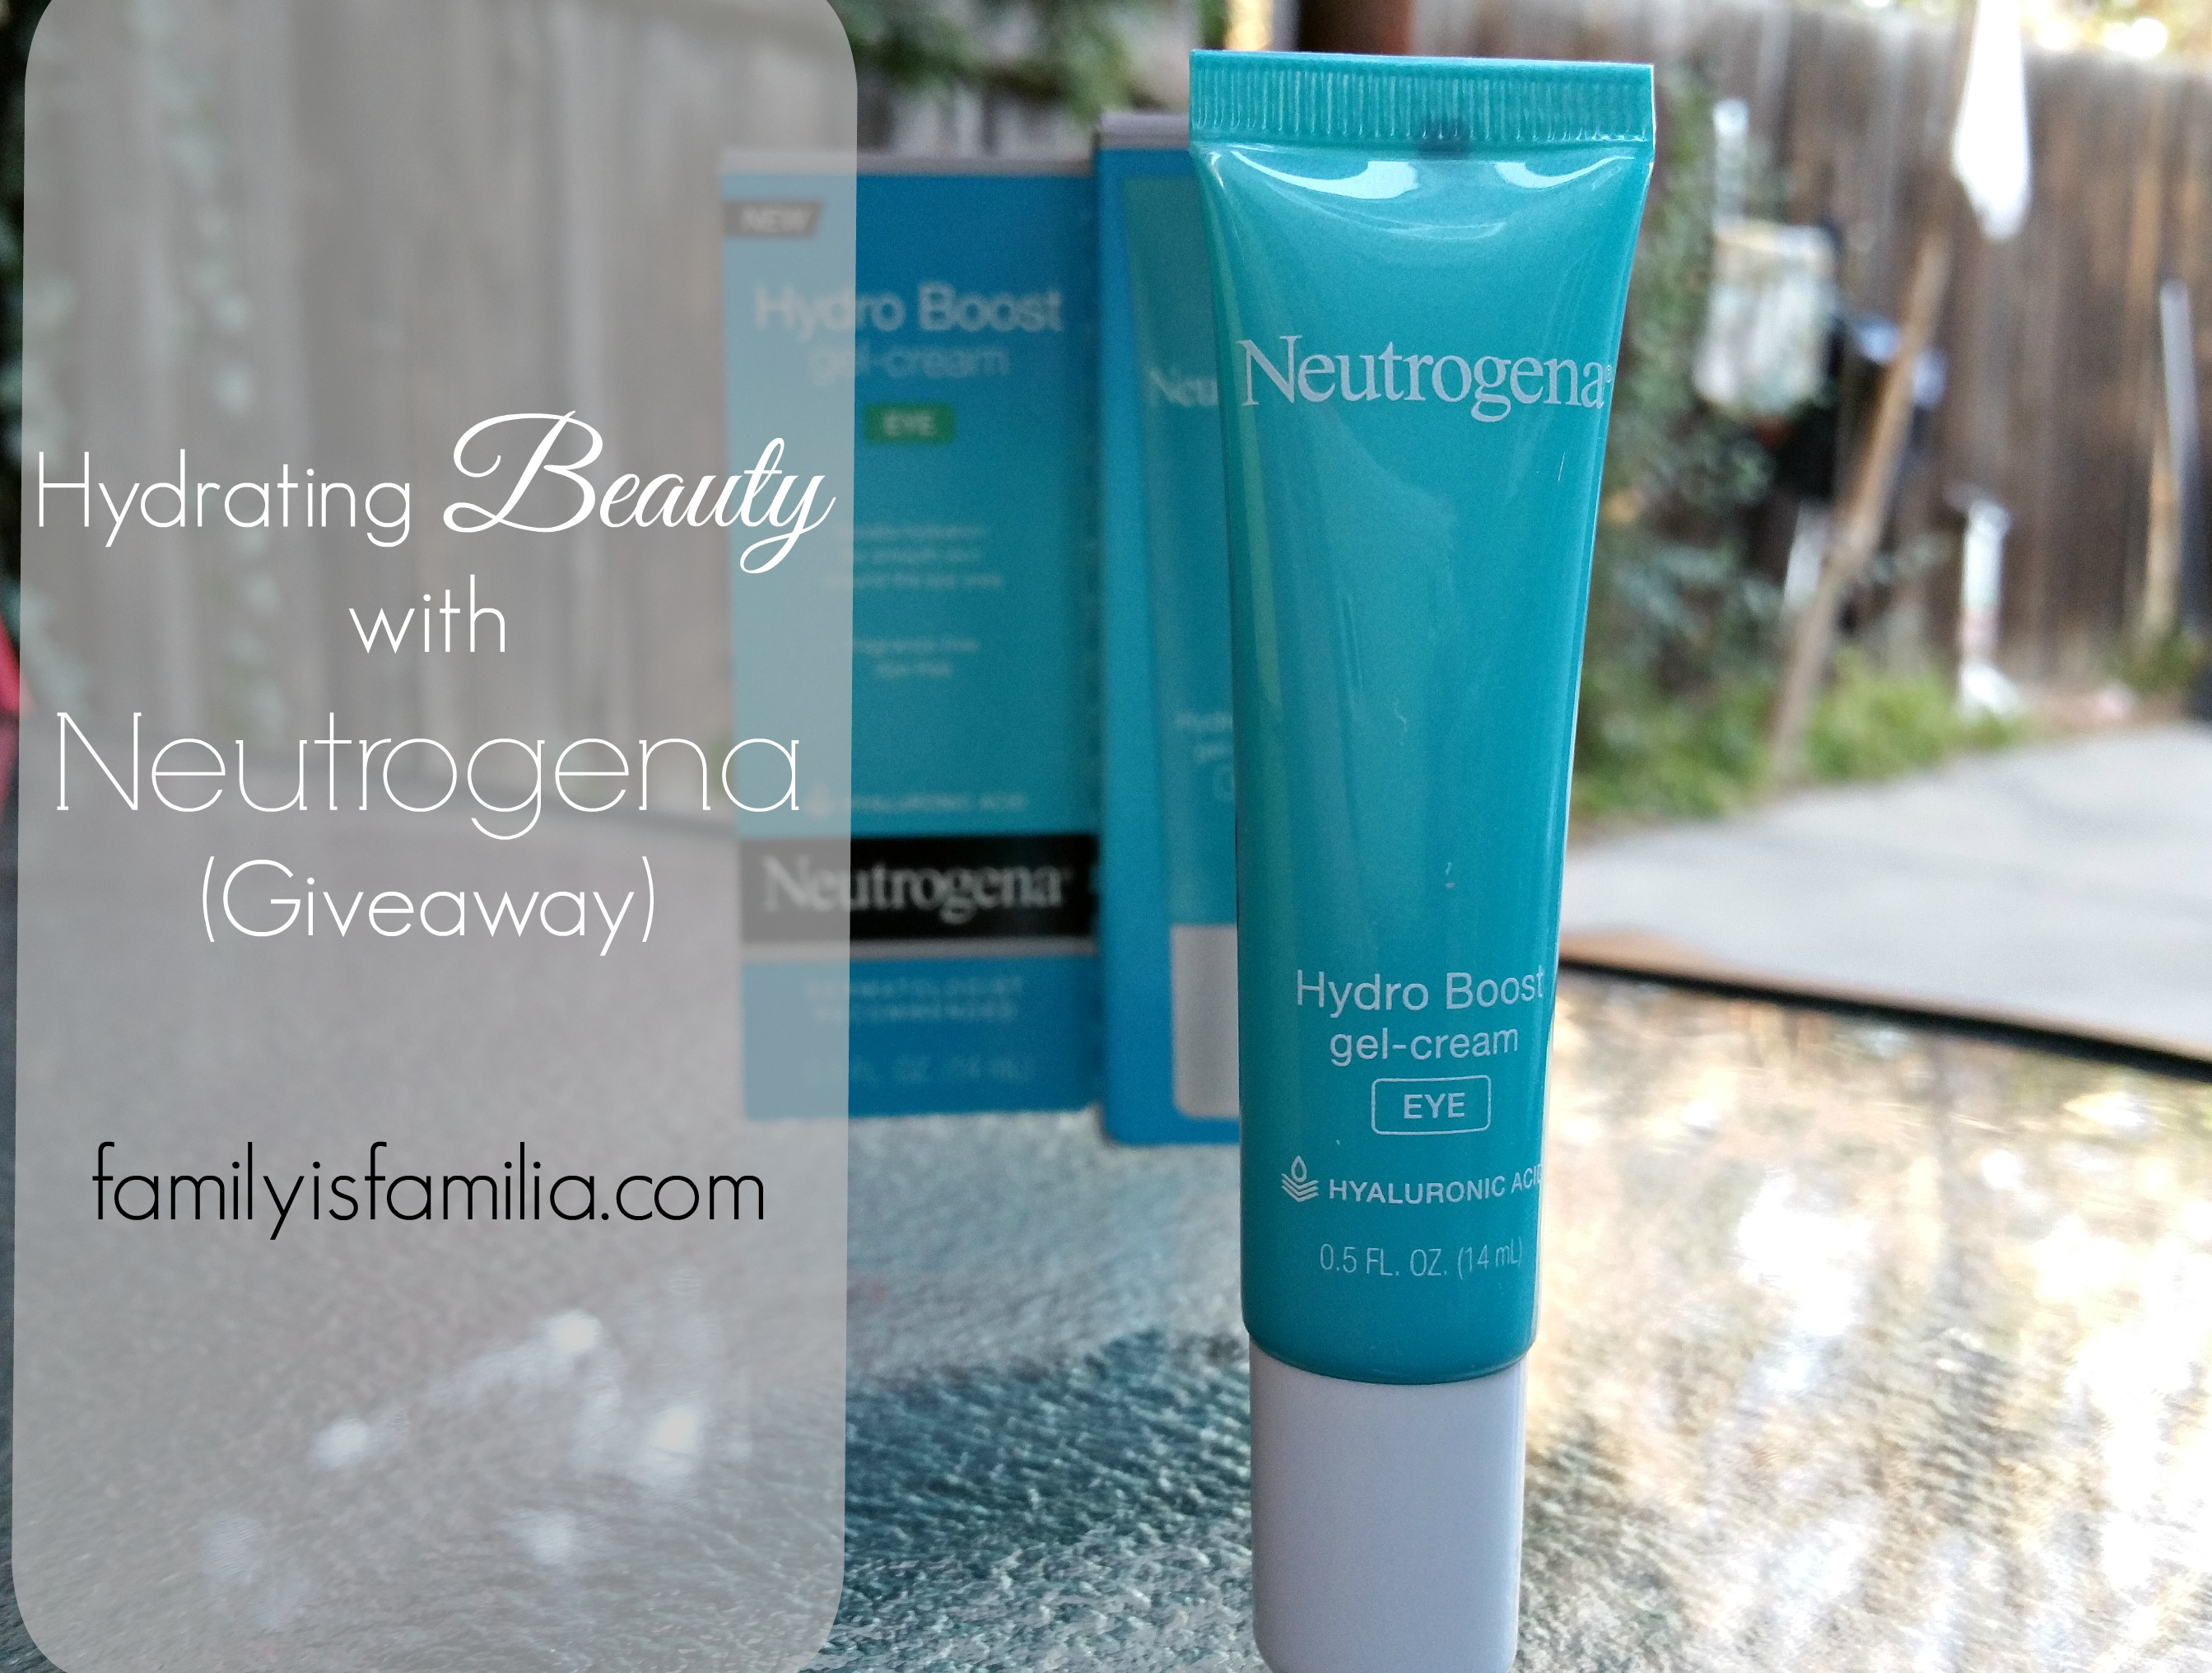 hydrating-beauty-neutrogena-giveaway